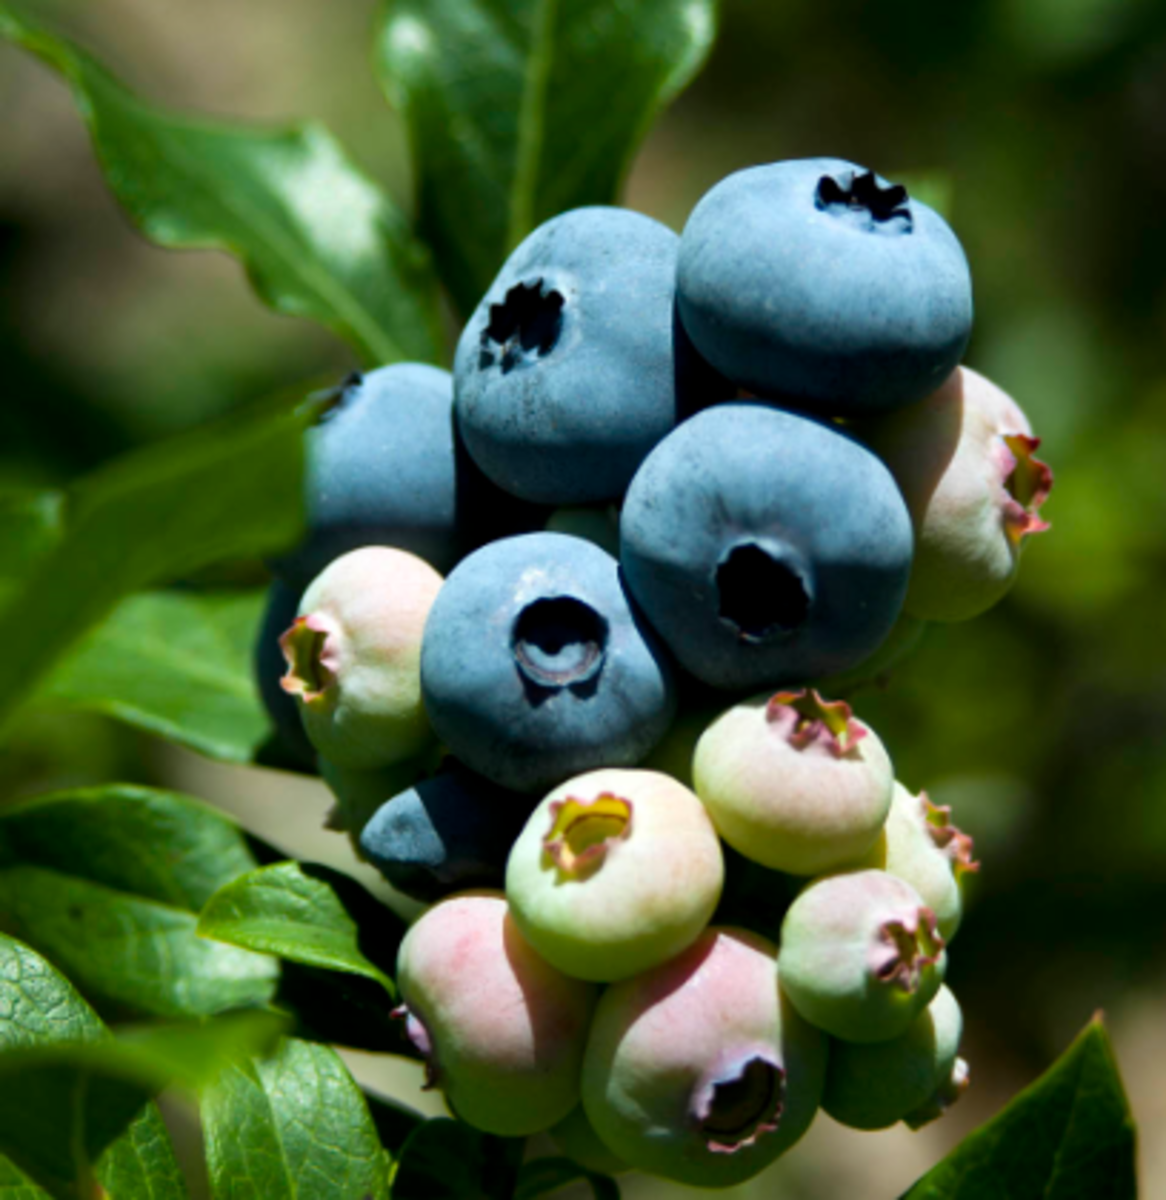 The Beautiful Blueberry